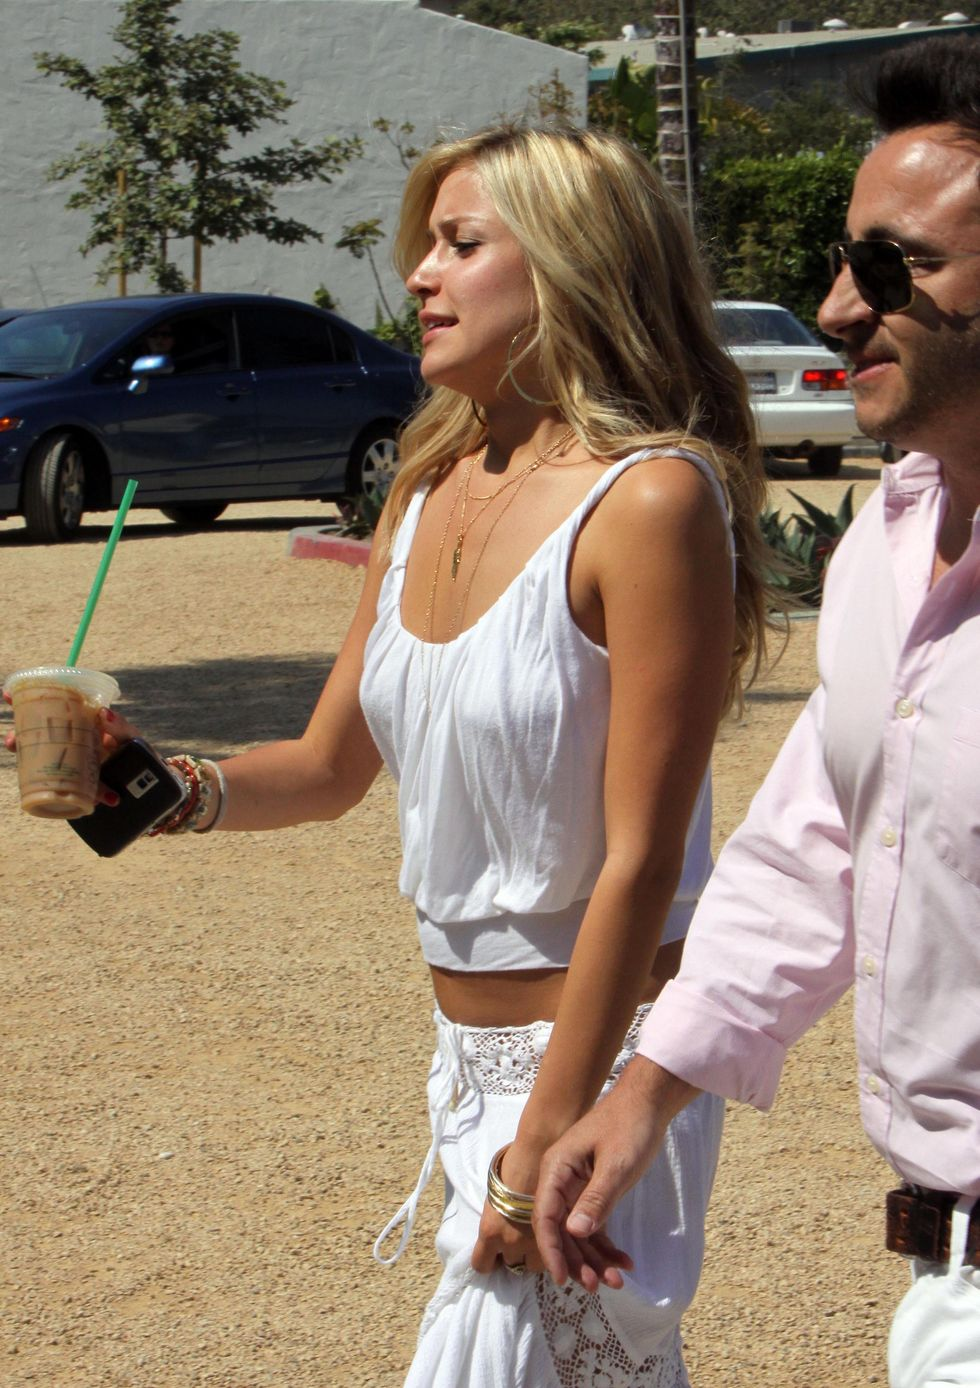 Pics of: Kristin Cavallari - Downblouse Candids in Malibu